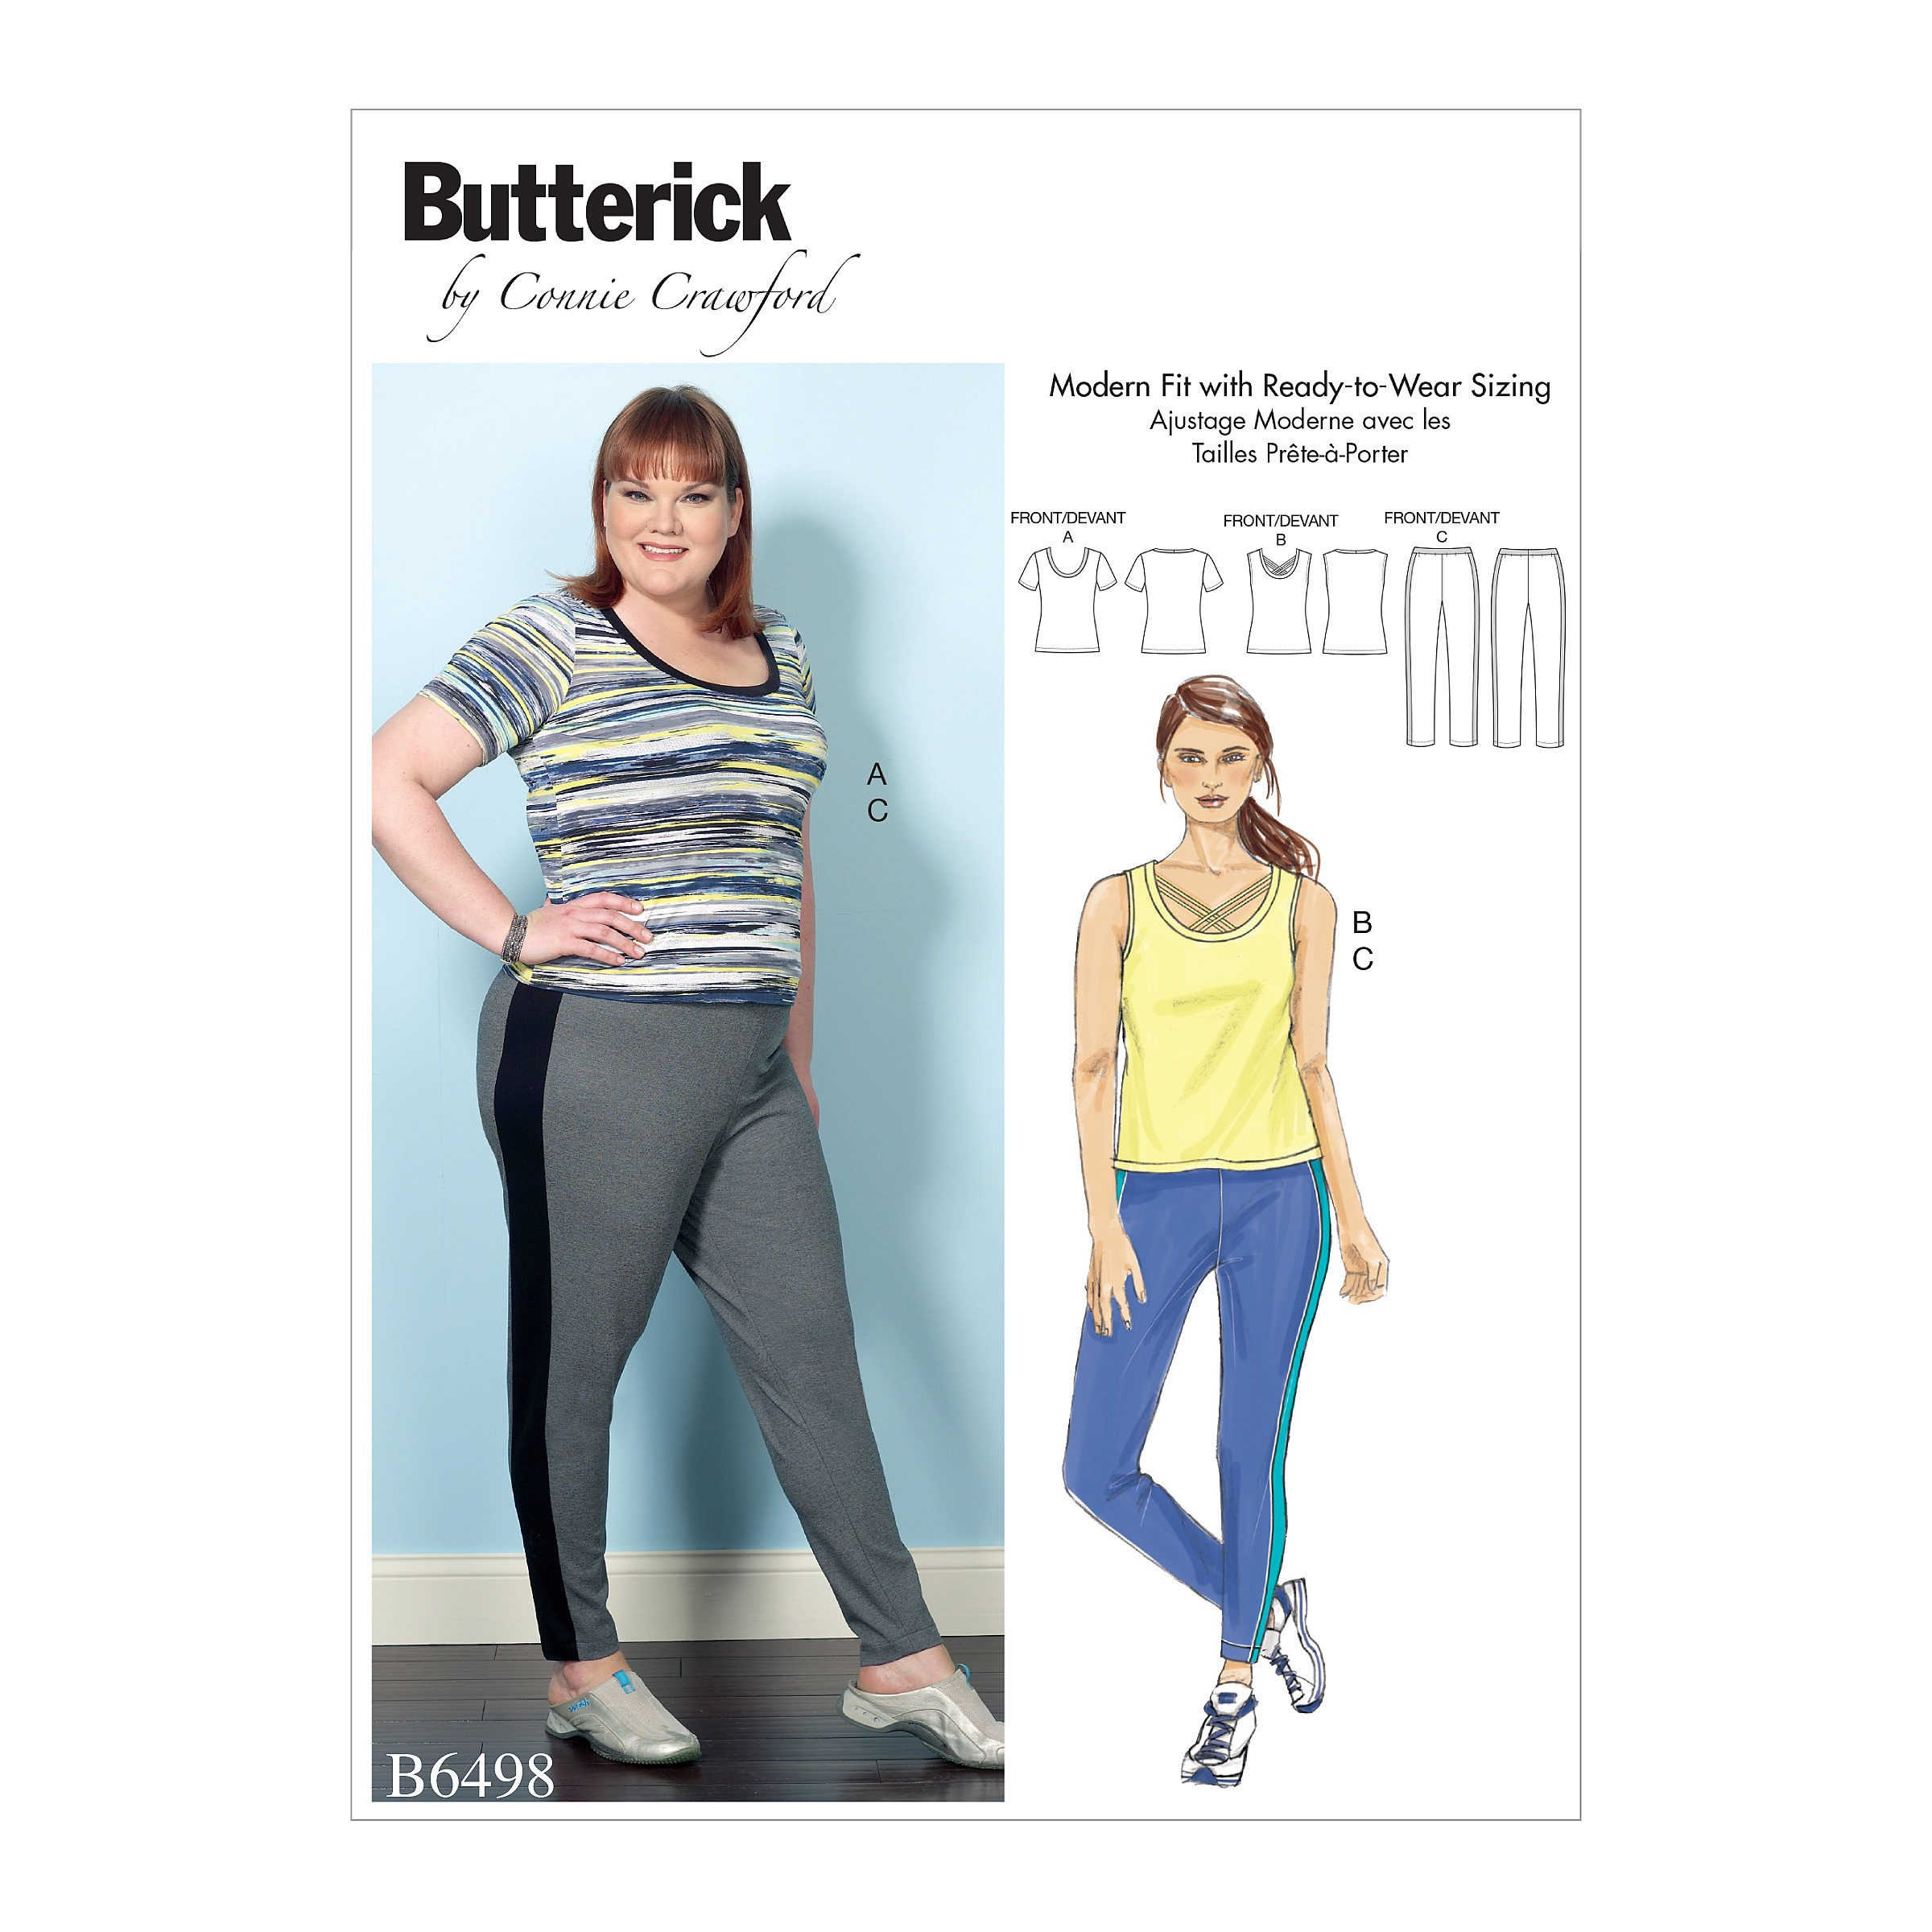 Butterick Sewing Pattern 6498 Misses' Knit Tops & Elastic-Waist Trousers